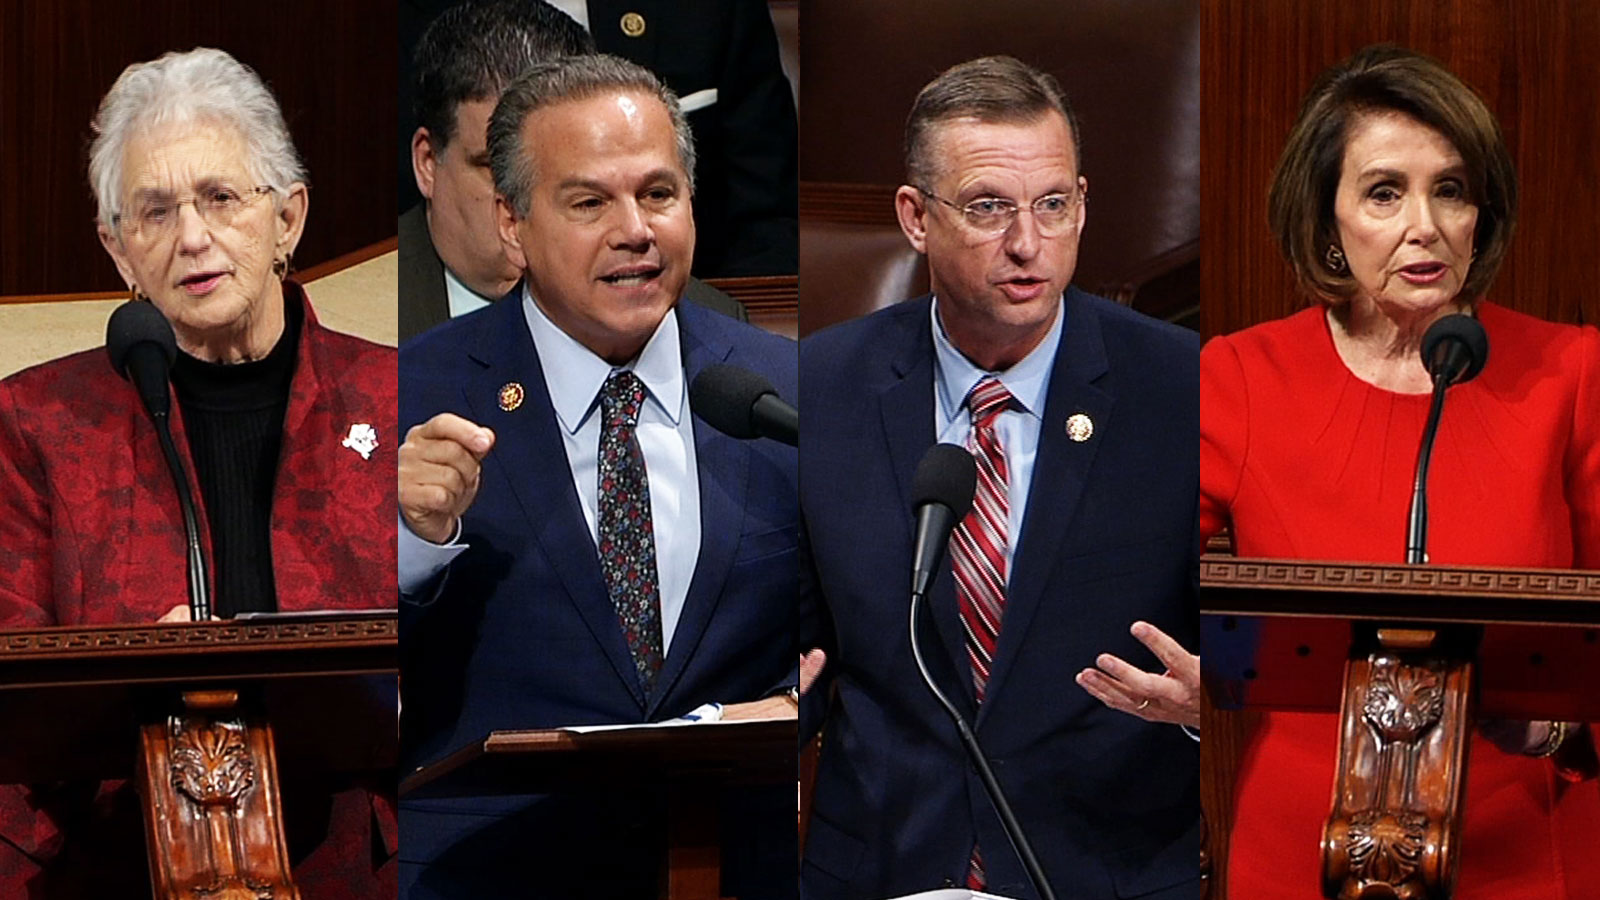 Image result for Every House Democrat but 1 co-sponsor bill that would ruin girl sportsby forcing them to allow male transgenders join their teams